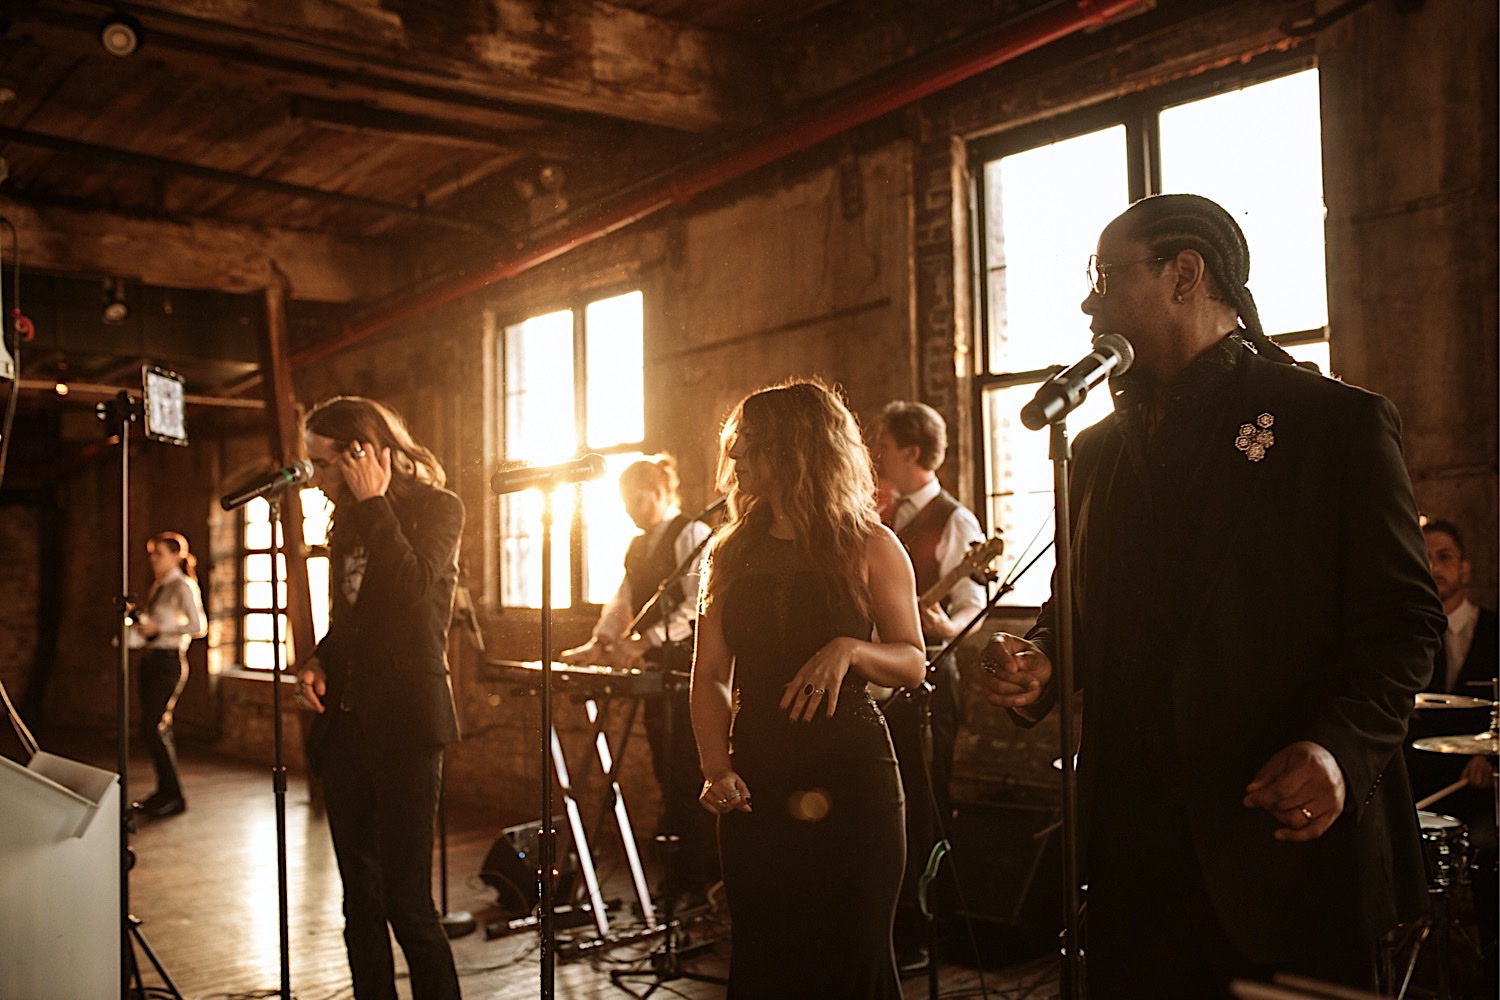 A band plays at sunset at the rooftop wedding venue Greenpoint Loft in Brooklyn NYC